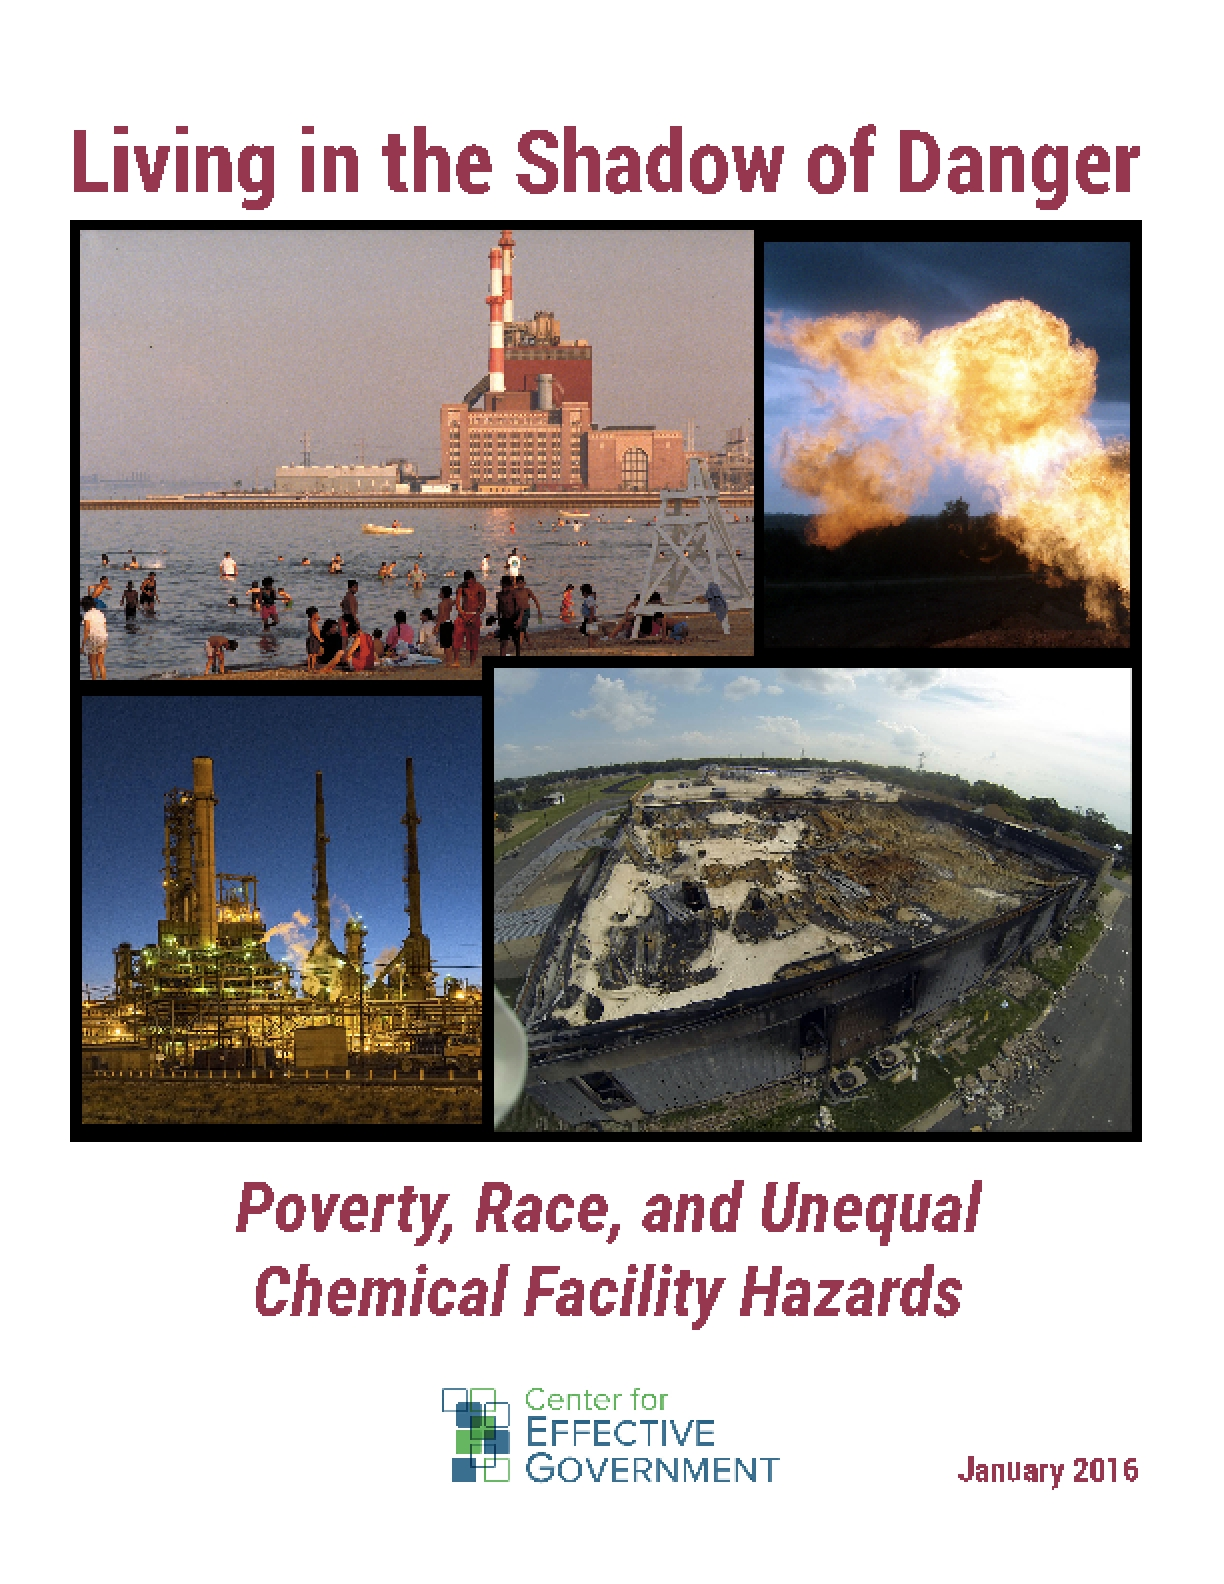 Living in the Shadow of Danger: Poverty, Race, and Unequal Chemical Facility Hazards